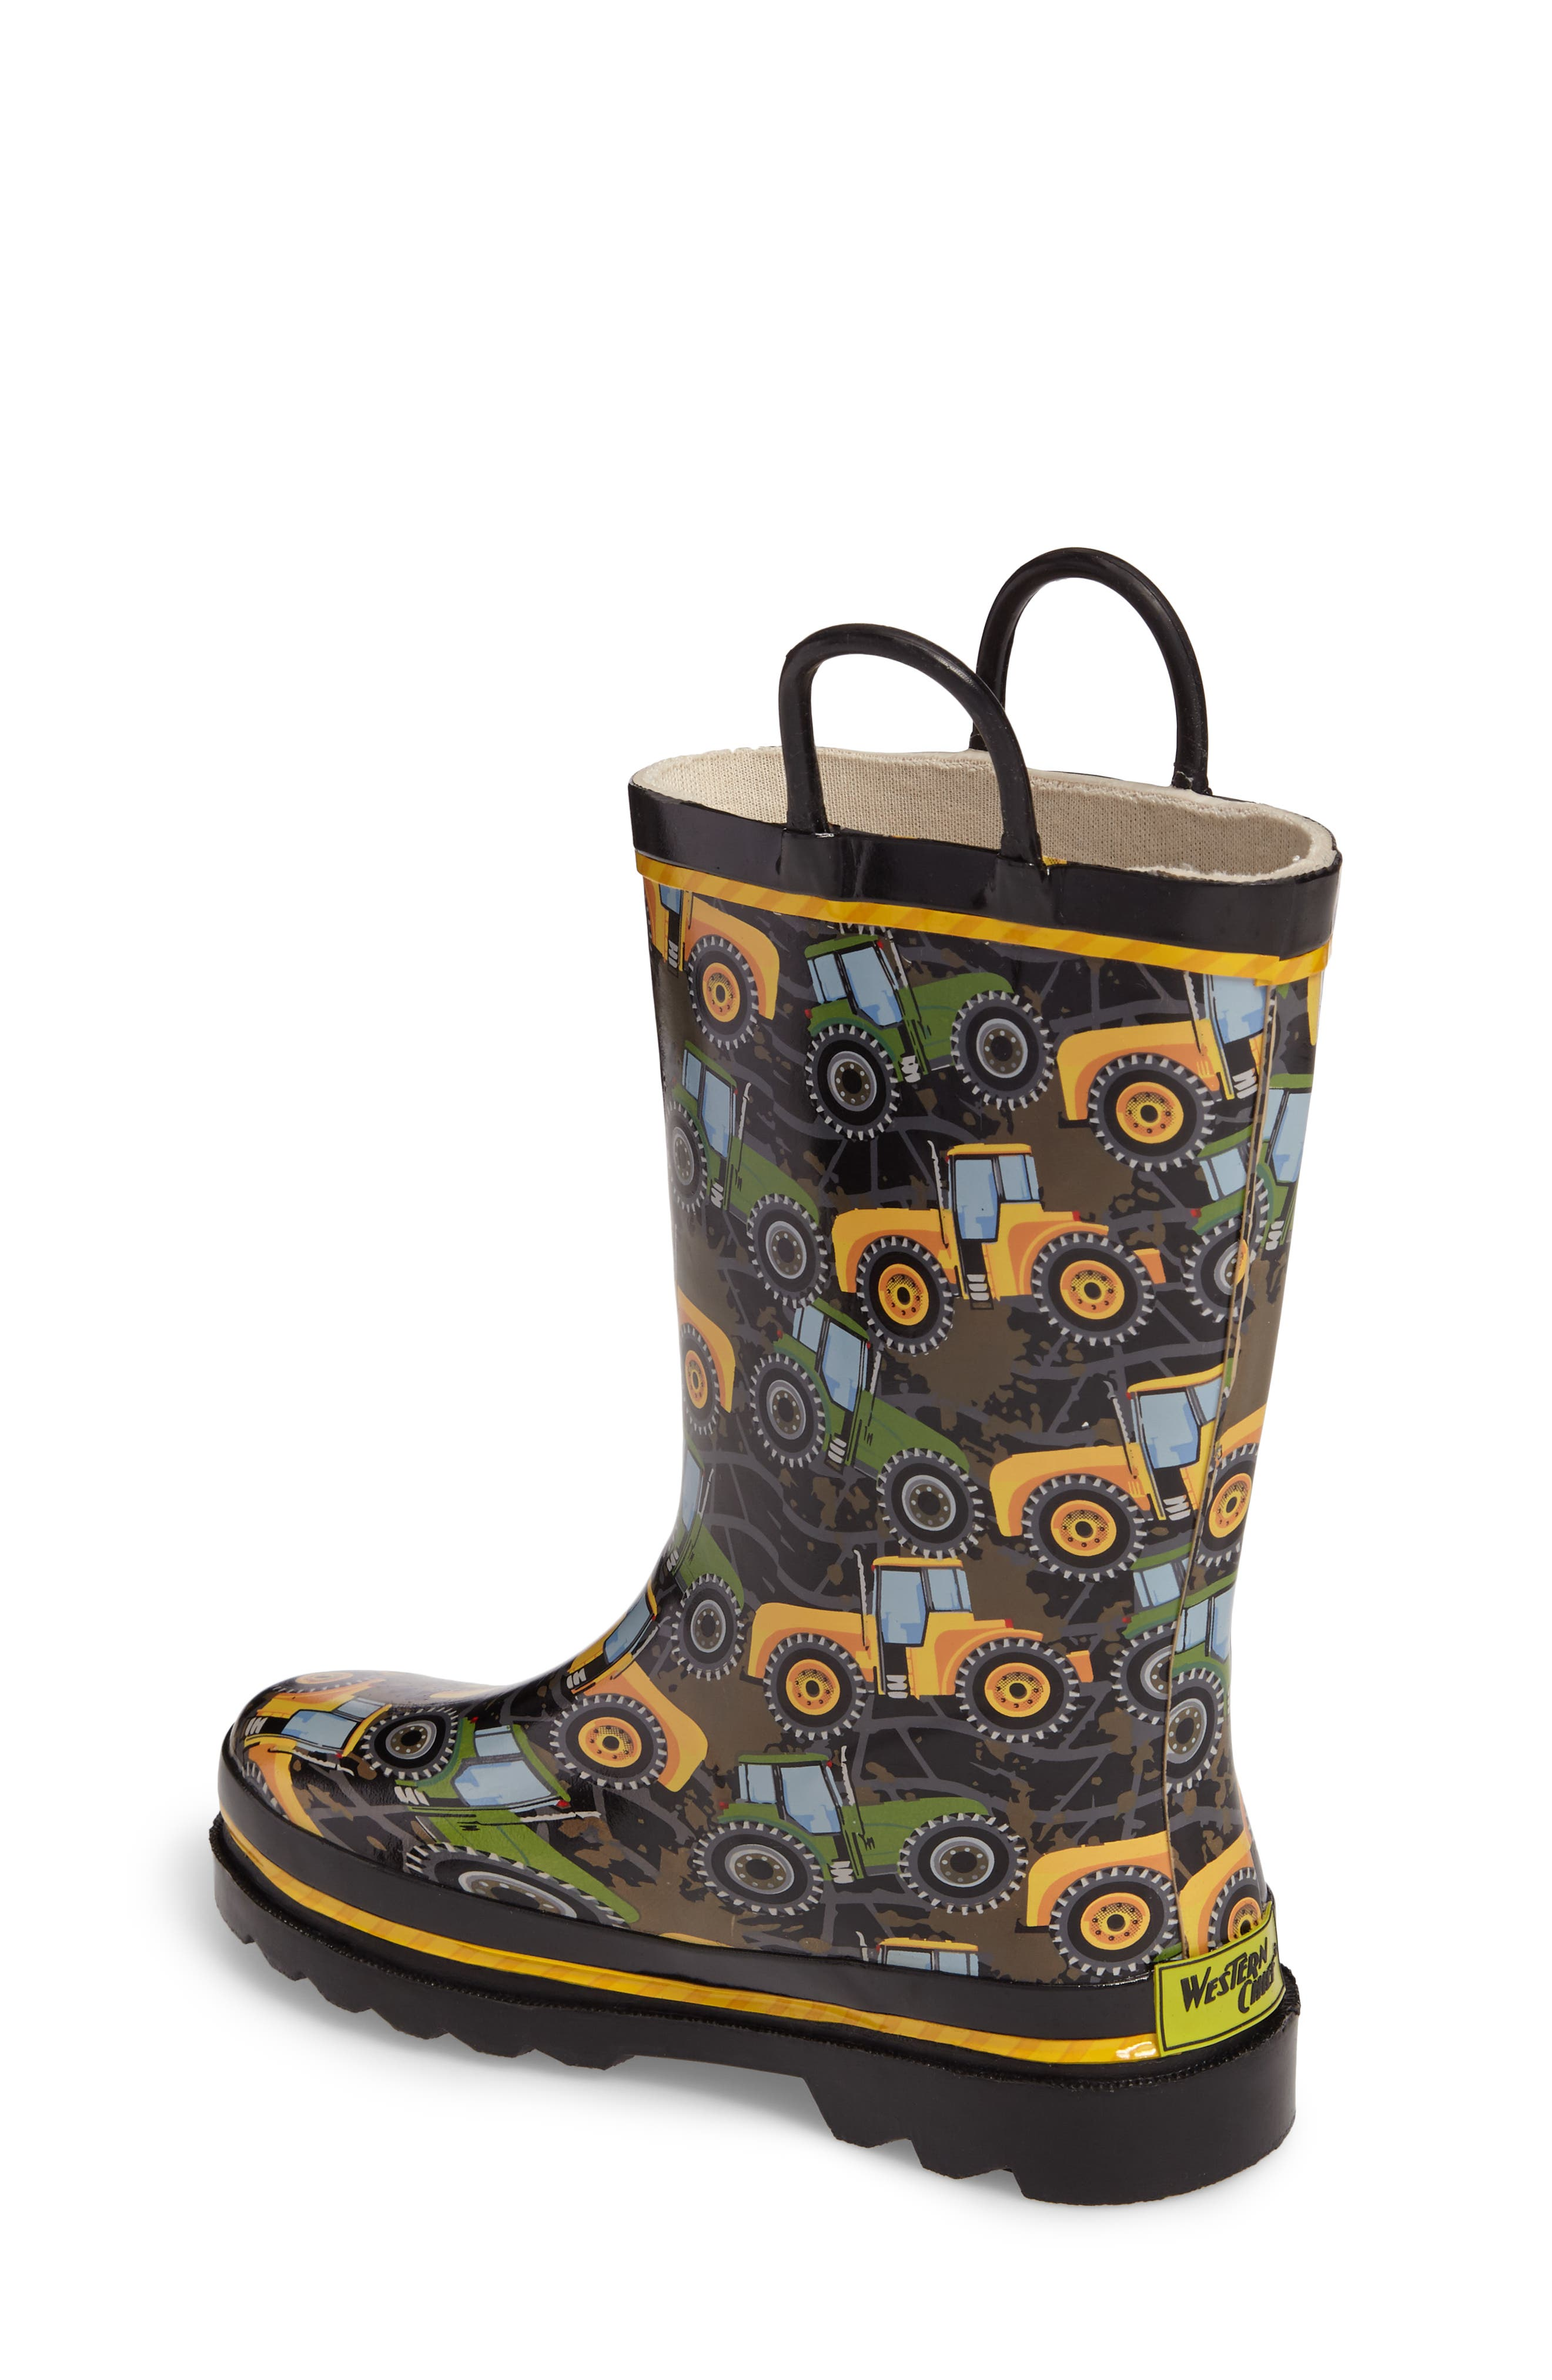 Tractor Tough Rain Boot,                             Alternate thumbnail 2, color,                             Black